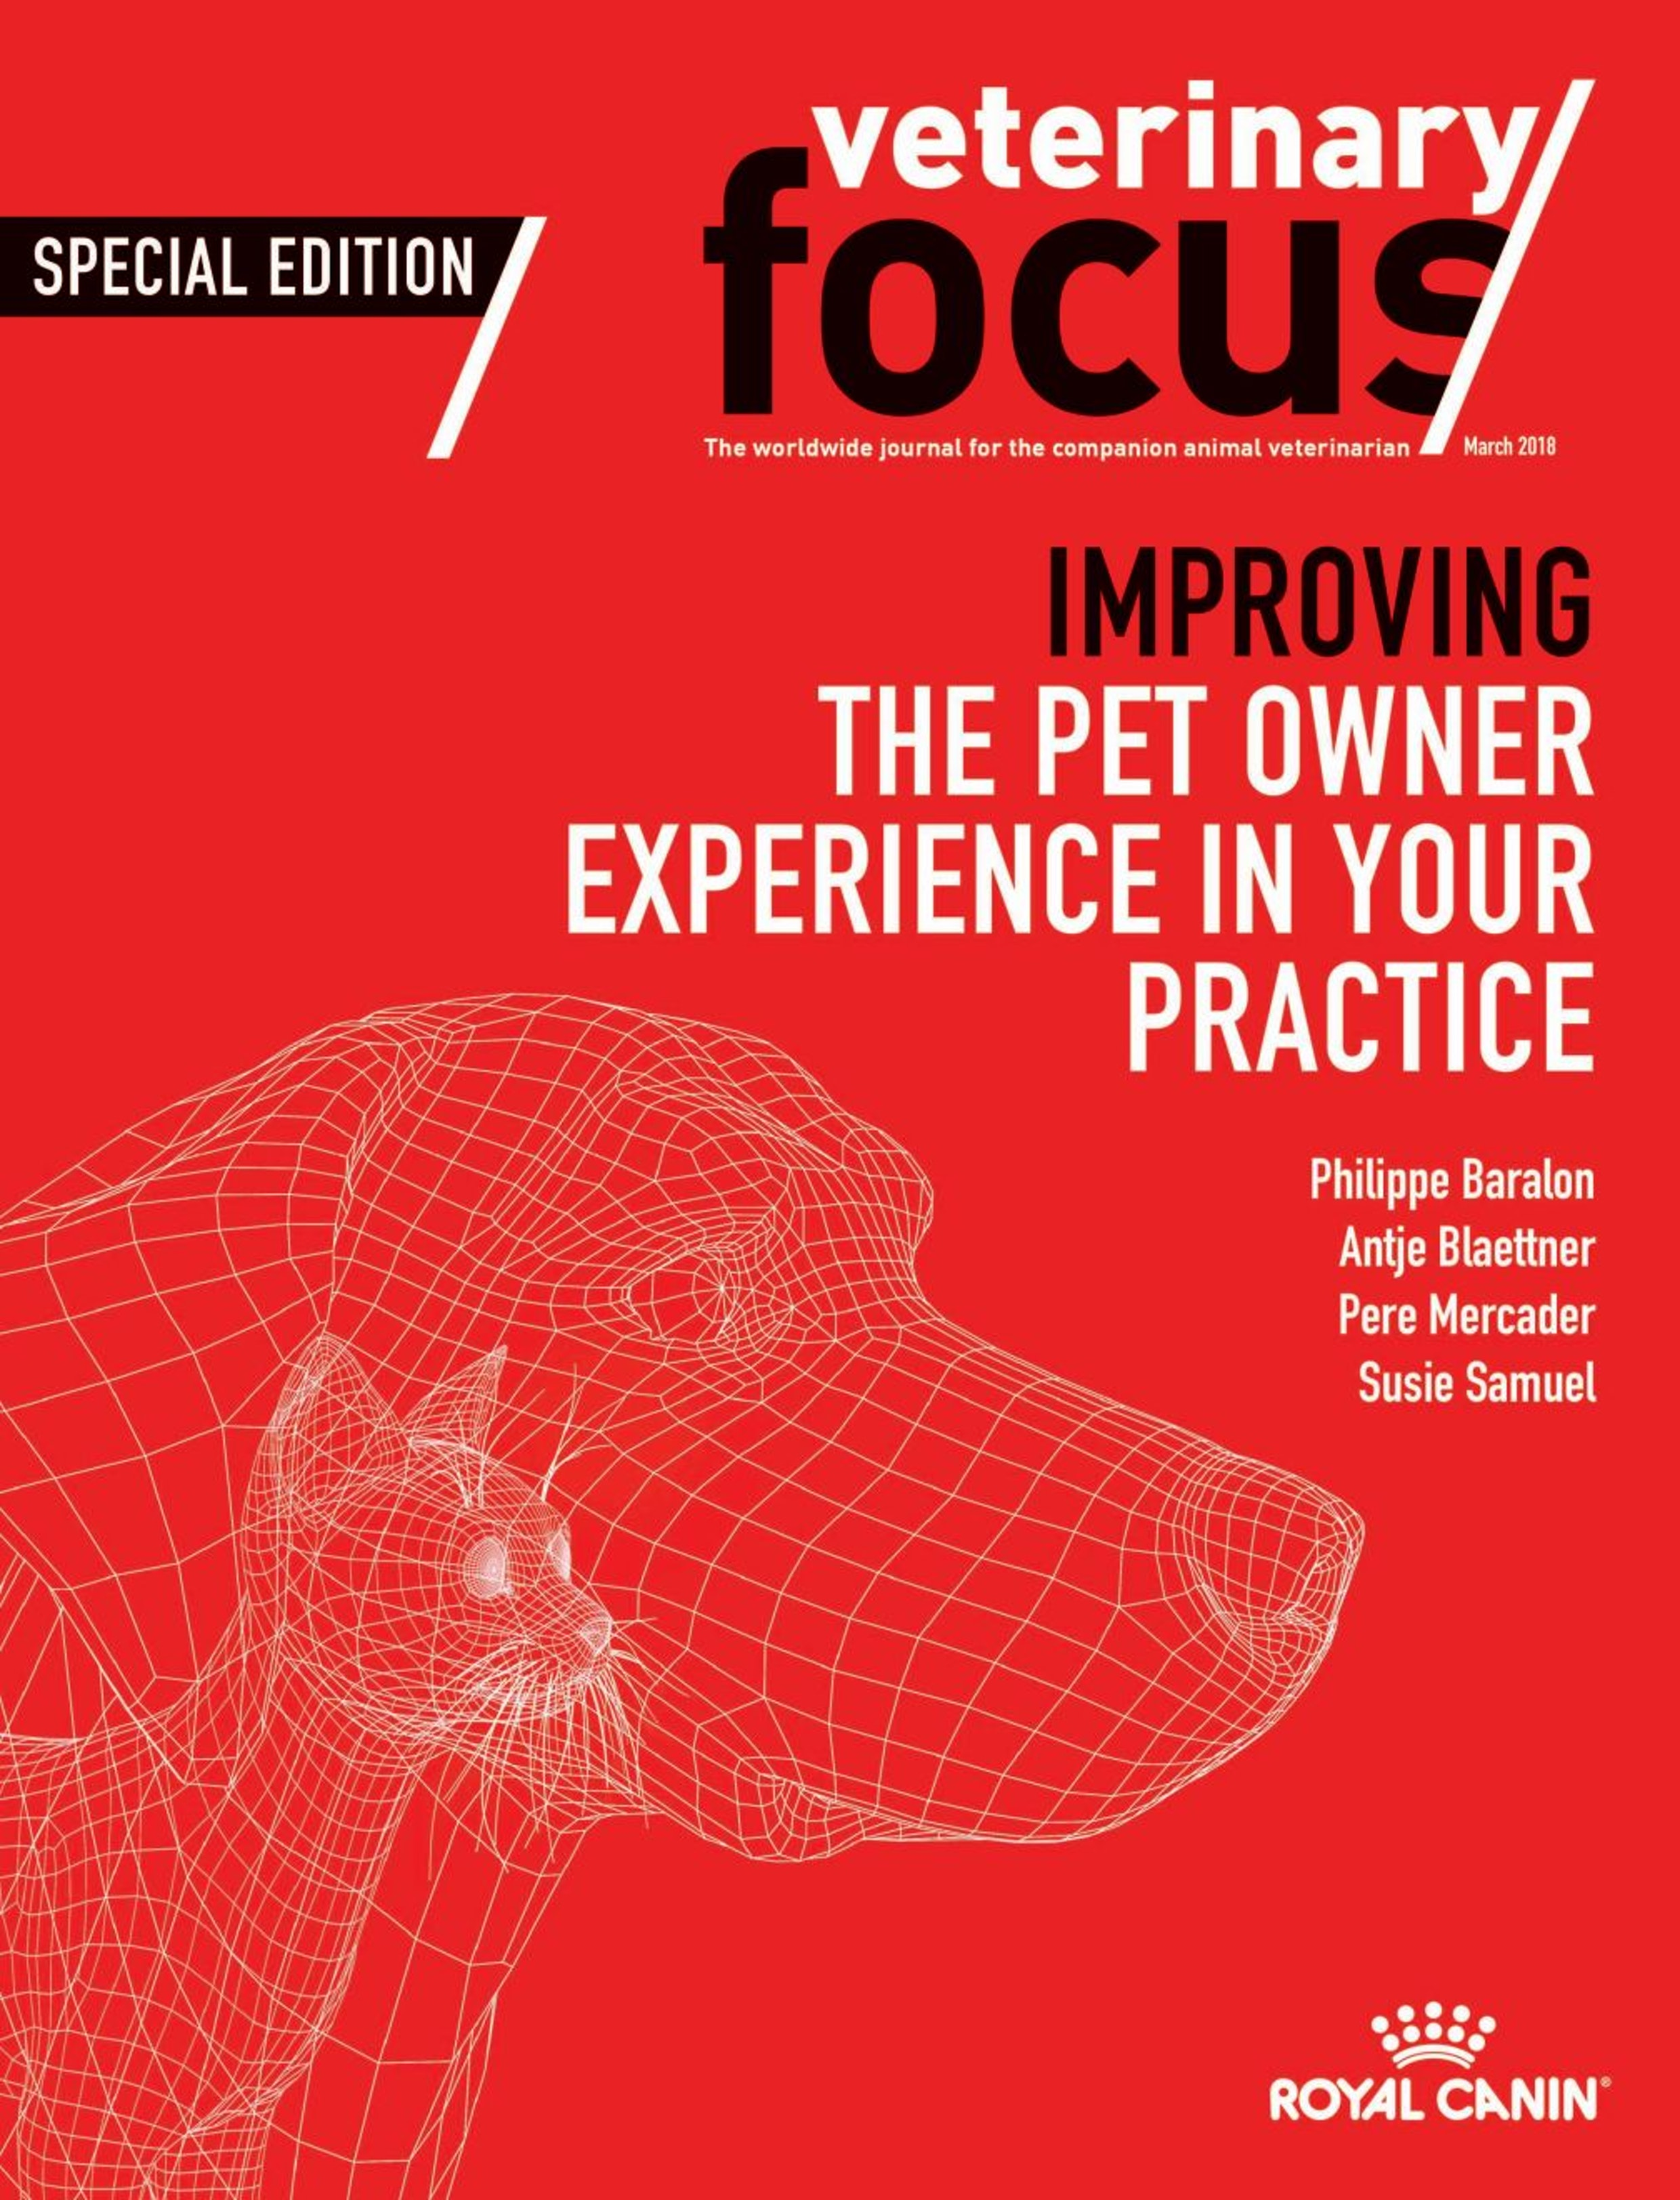 Improving the pet owner experience in your practice